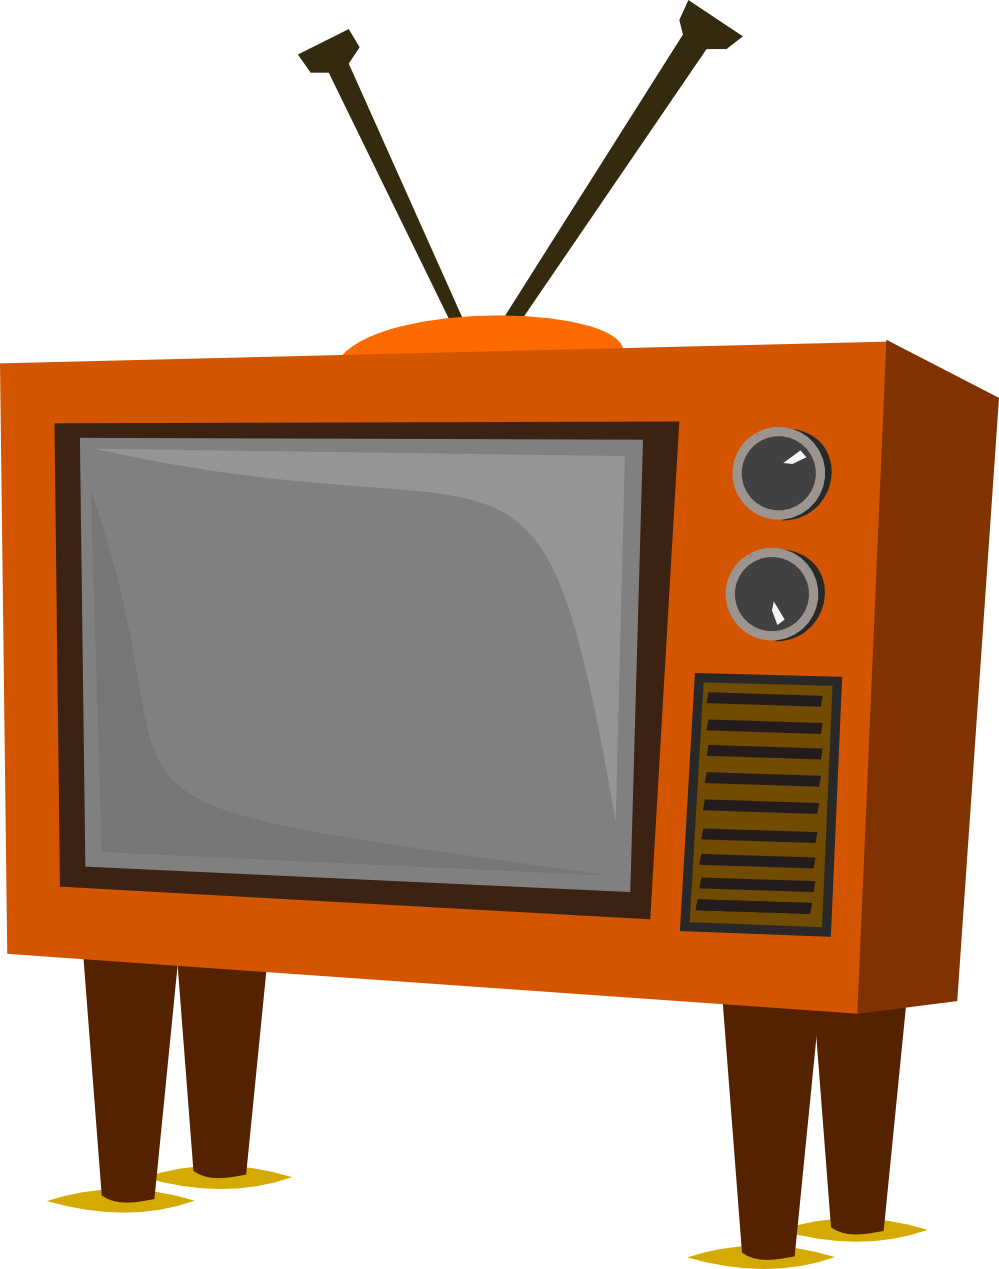 Tv cartoon png. Clipartist net search results